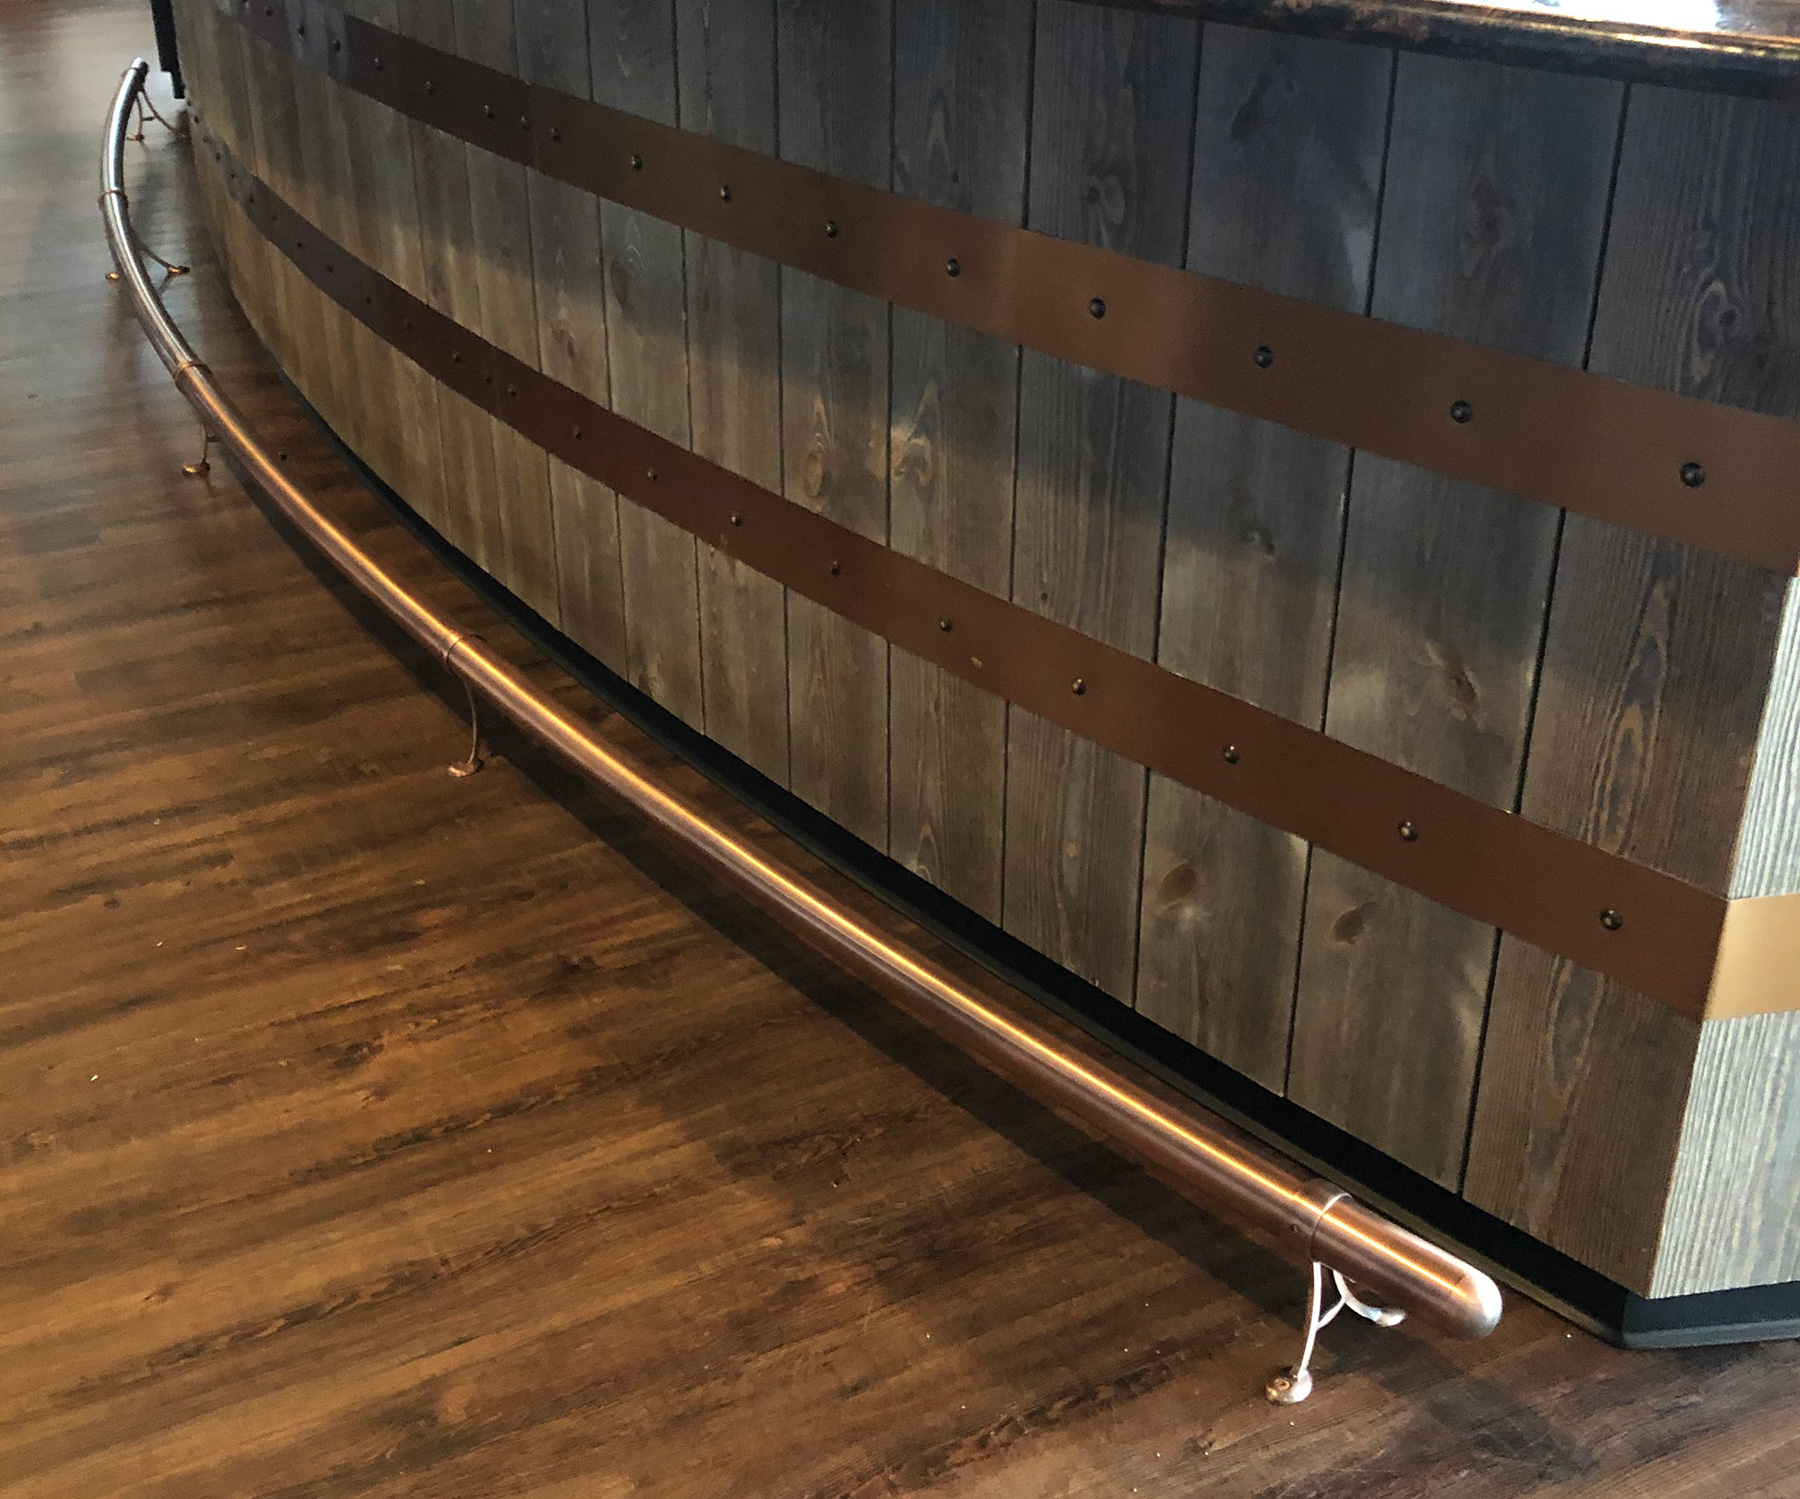 Antique Copper Curved Foot Rail | Pine Hill Country Club, Manorville, NY